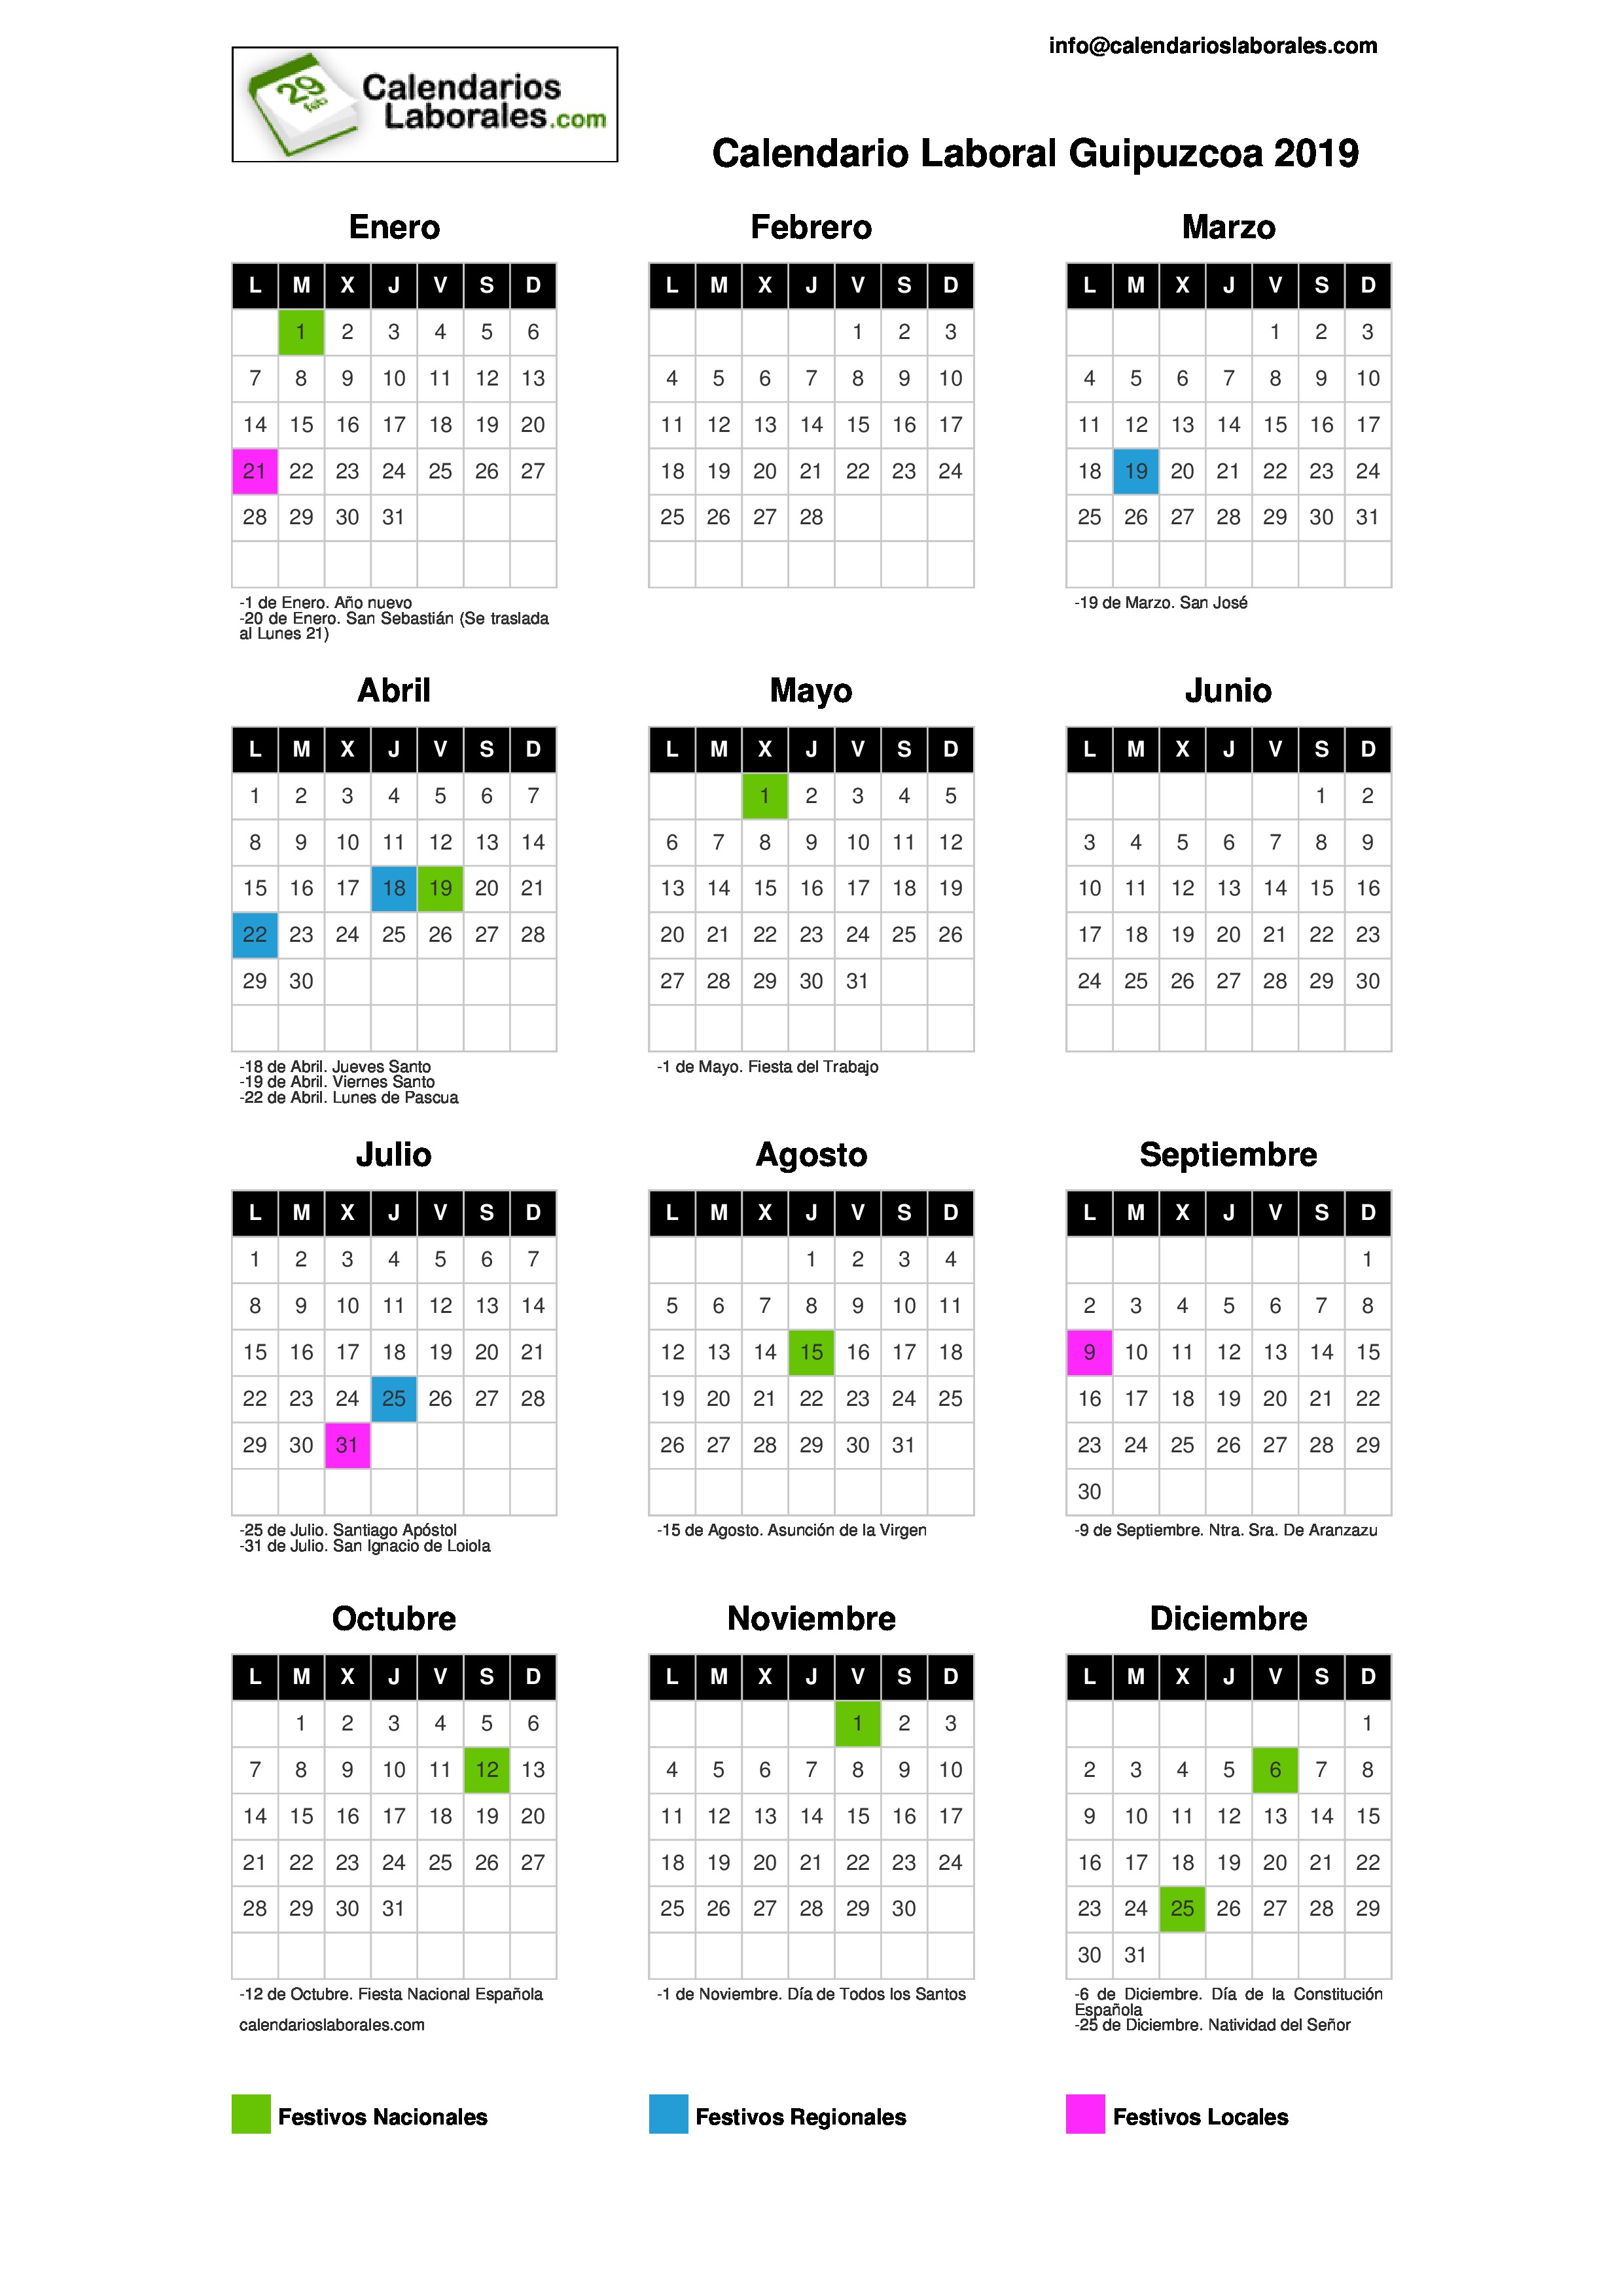 Calendario 2019 Julio Y Agosto.Calendario Laboral Guipuzcoa 2019